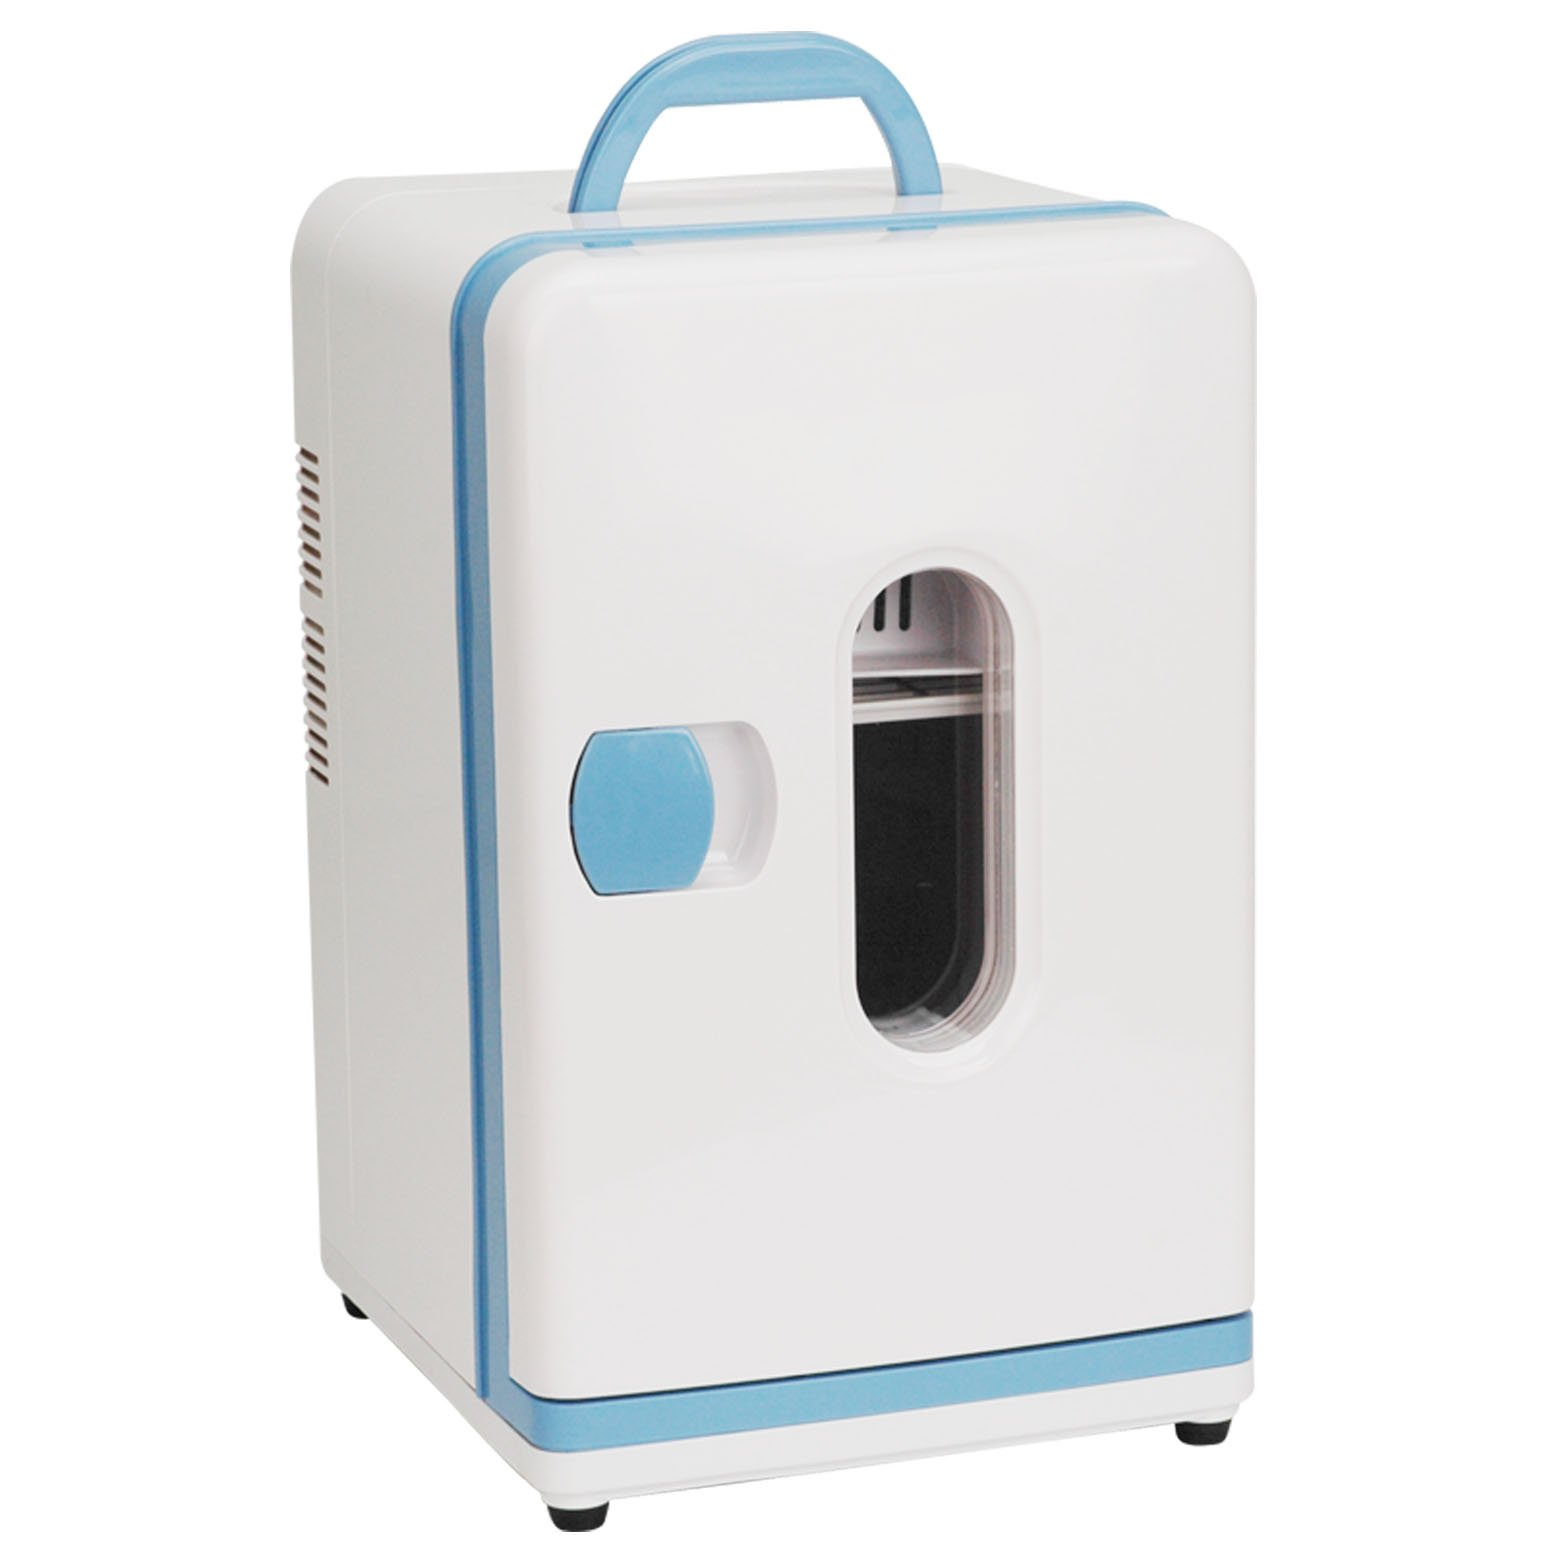 sell chest freezer car use frigerator mini freigerator car cooler factory sell directly-in